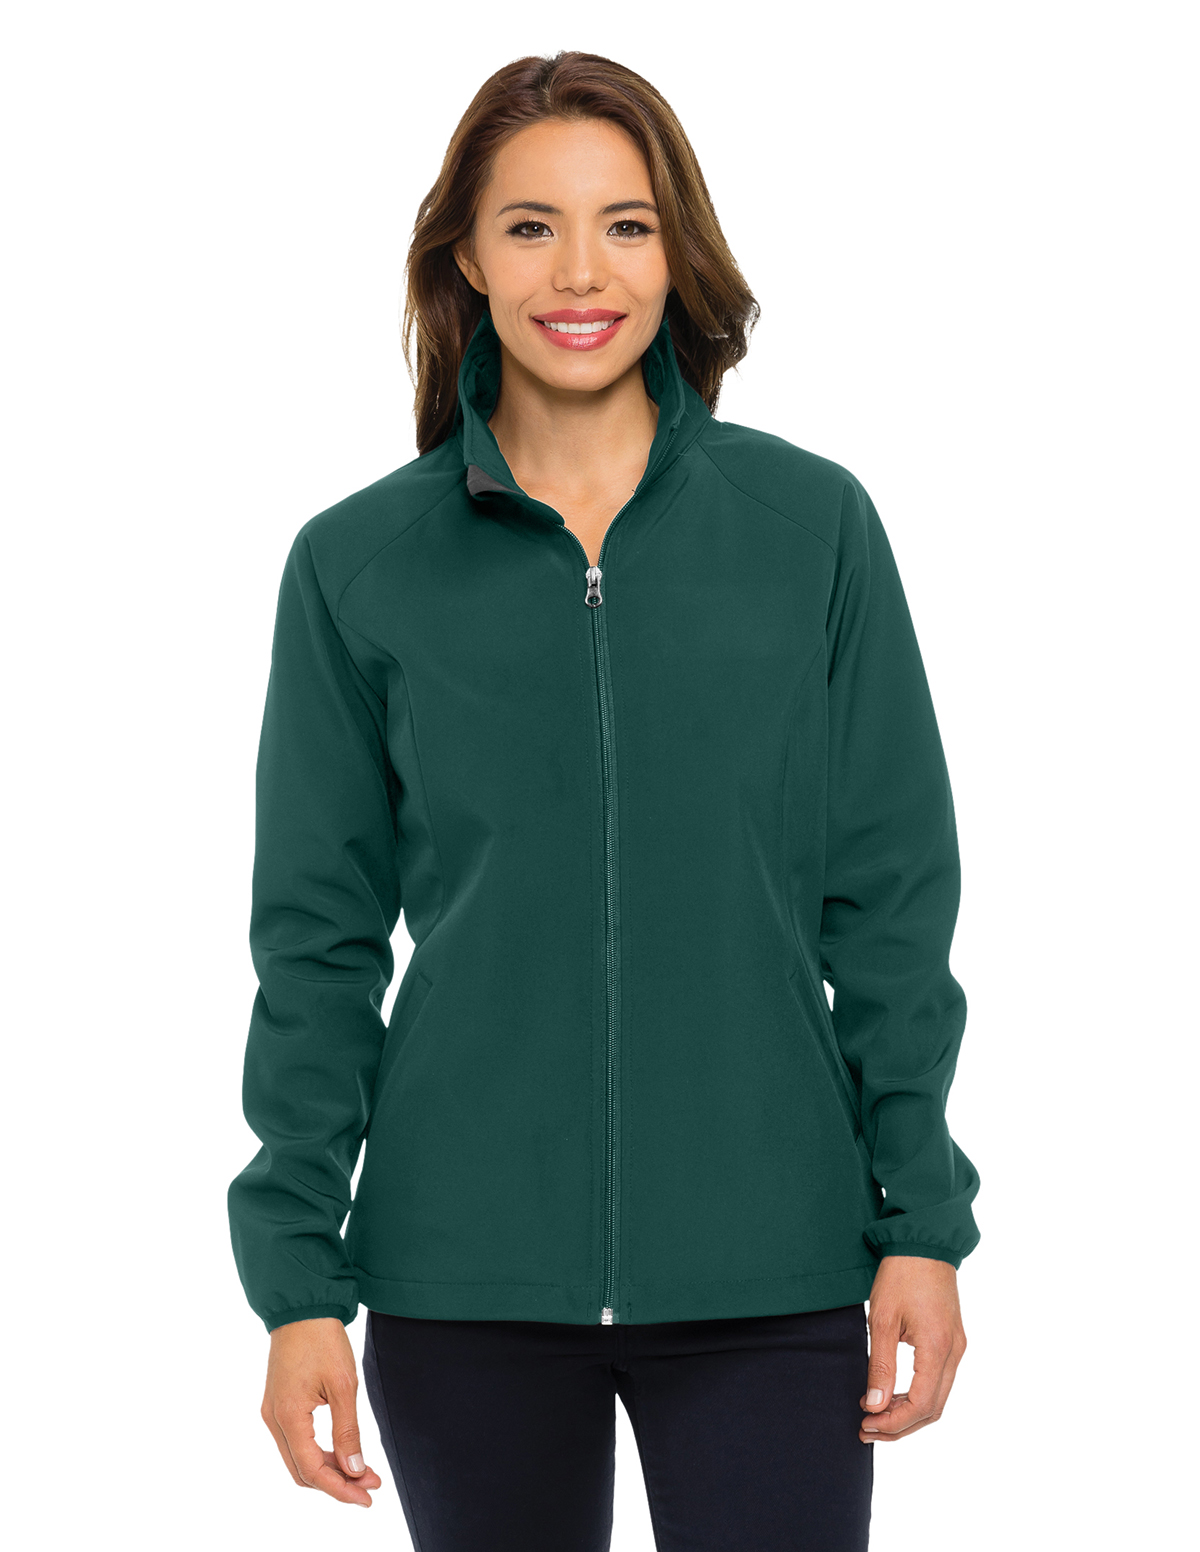 click to view FOREST GREEN / CHARCOAL